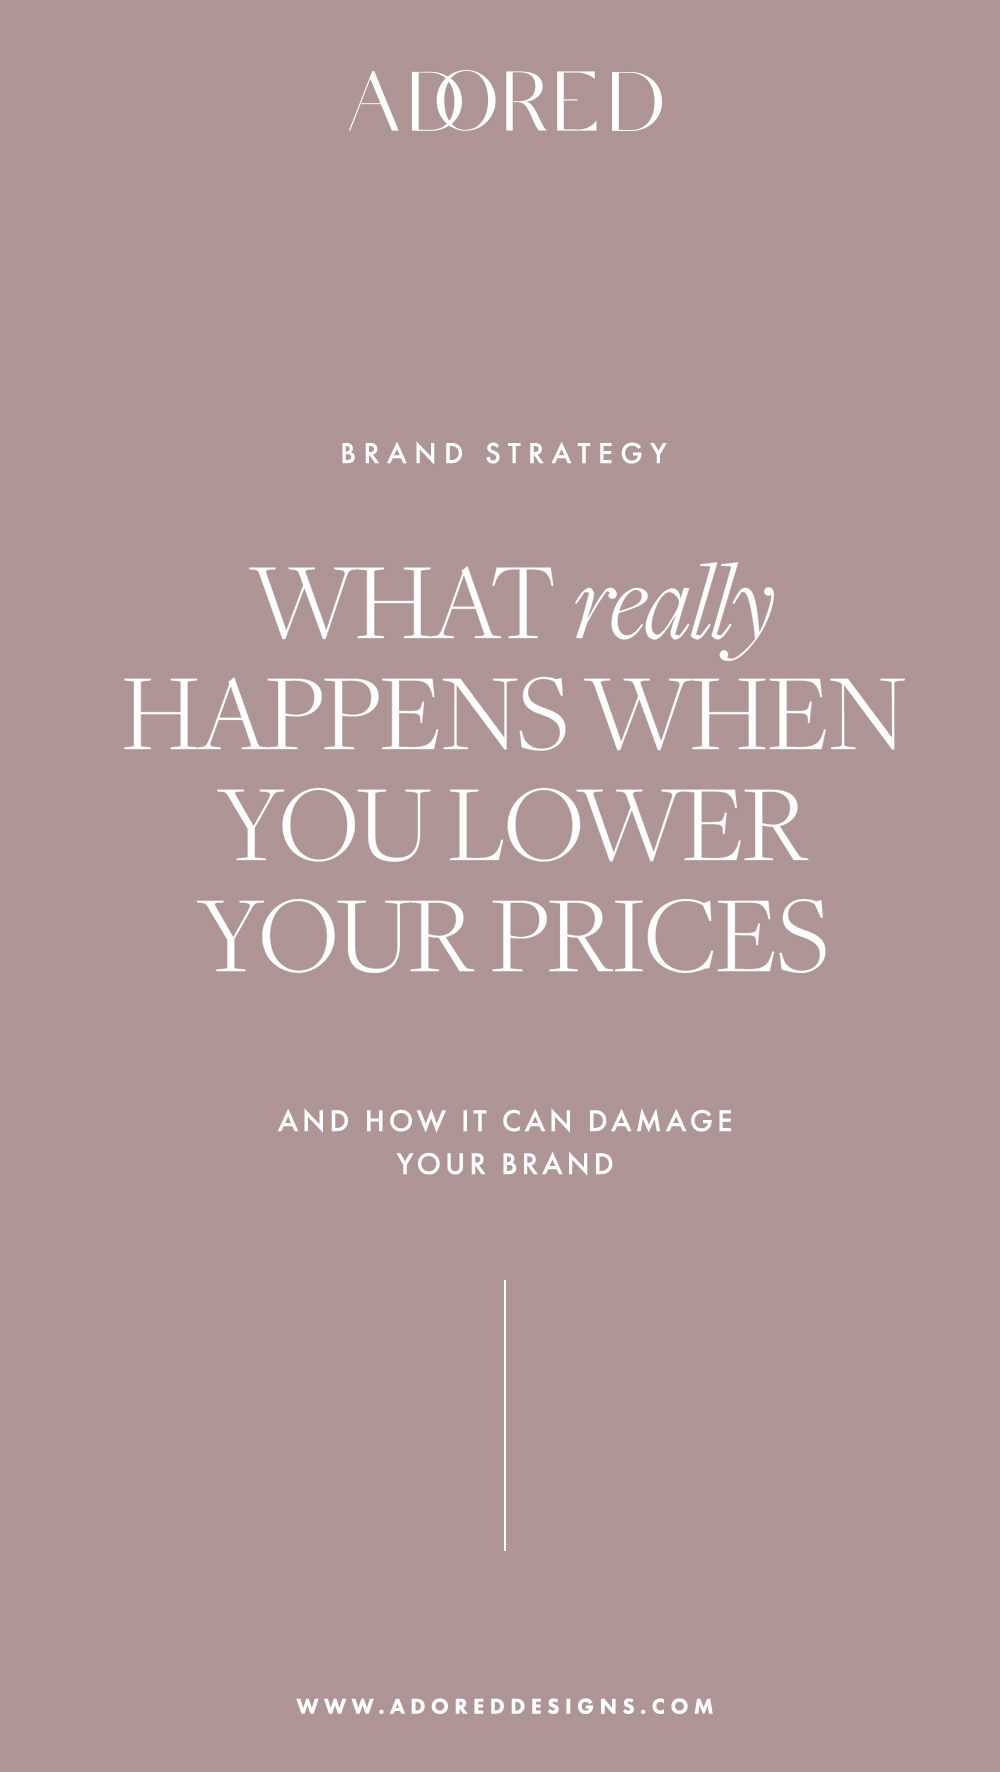 Premium brands: what really happens when you lower your prices